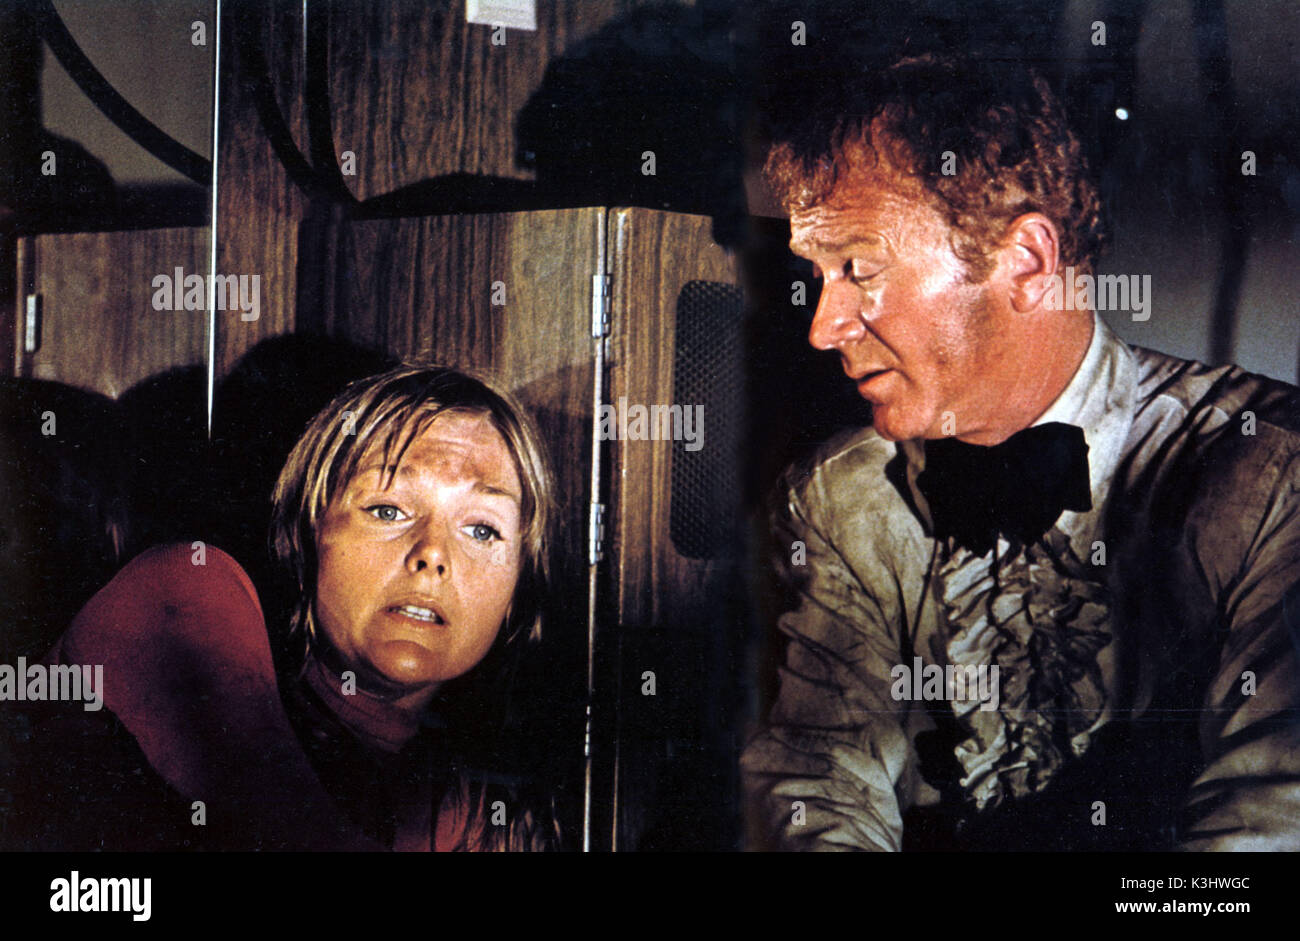 The Poseidon Adventure Carole Lynley Red Buttons Date 1972